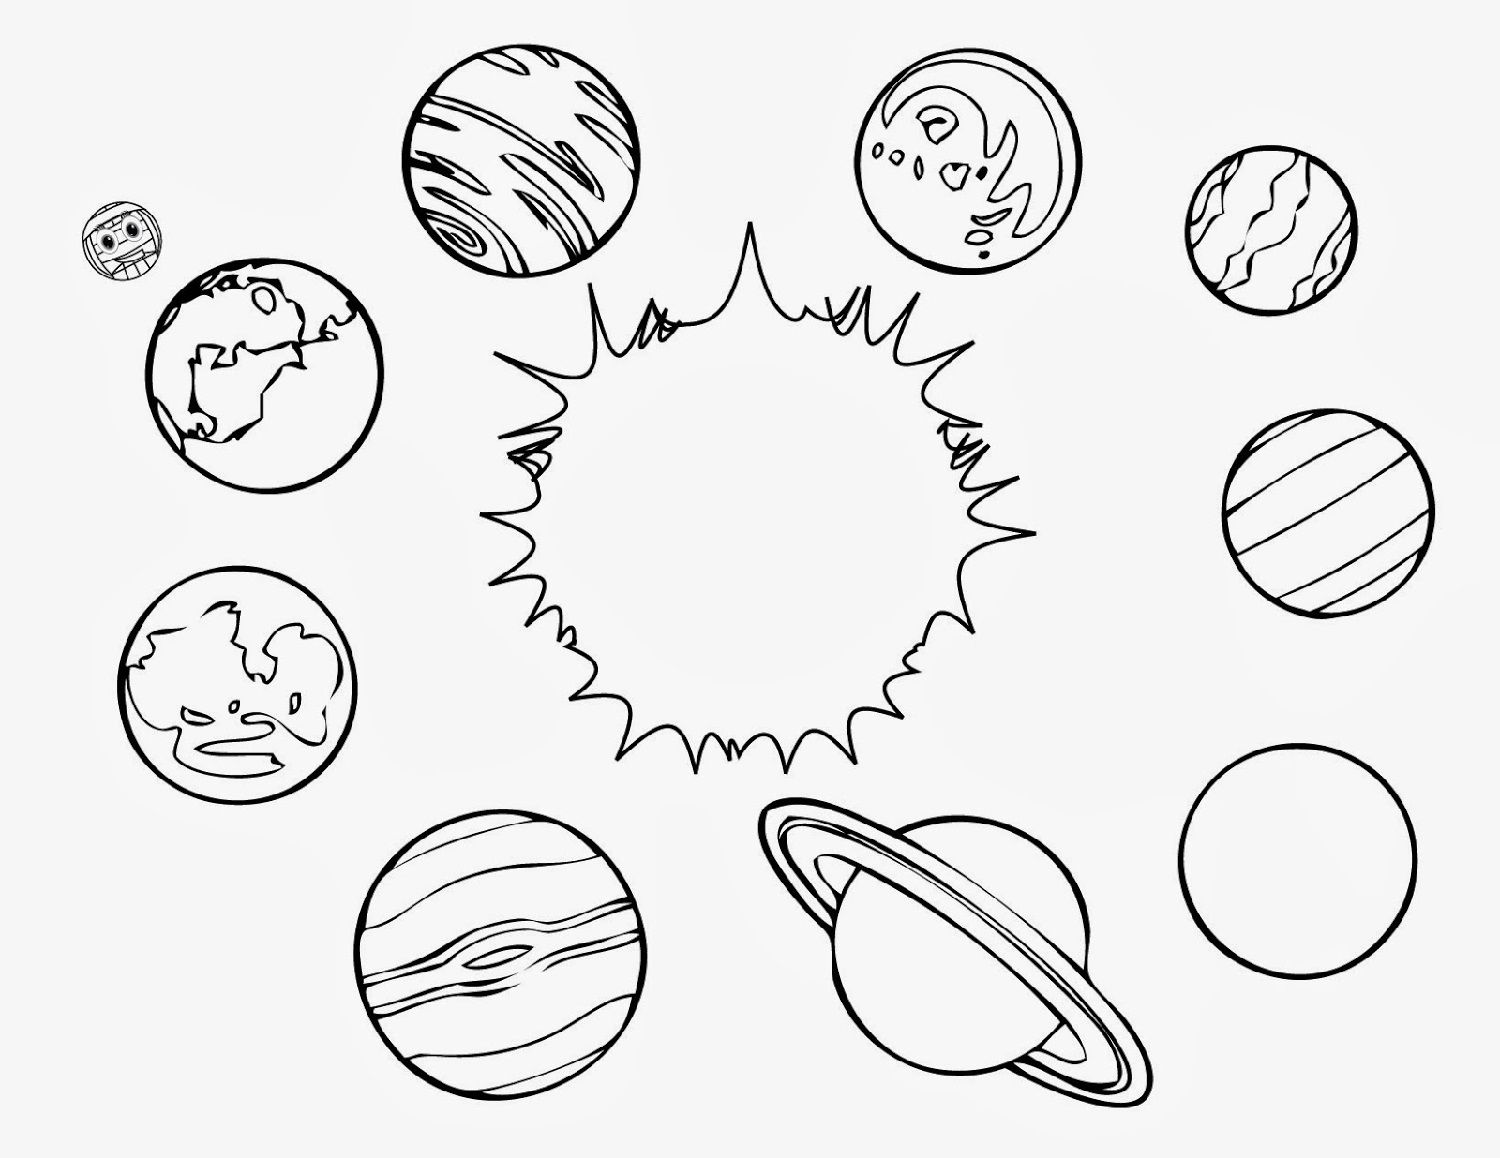 Printable Outer Space Worksheets Solar System Coloring Pages Planet Coloring Pages Space Coloring Pages [ 1158 x 1500 Pixel ]